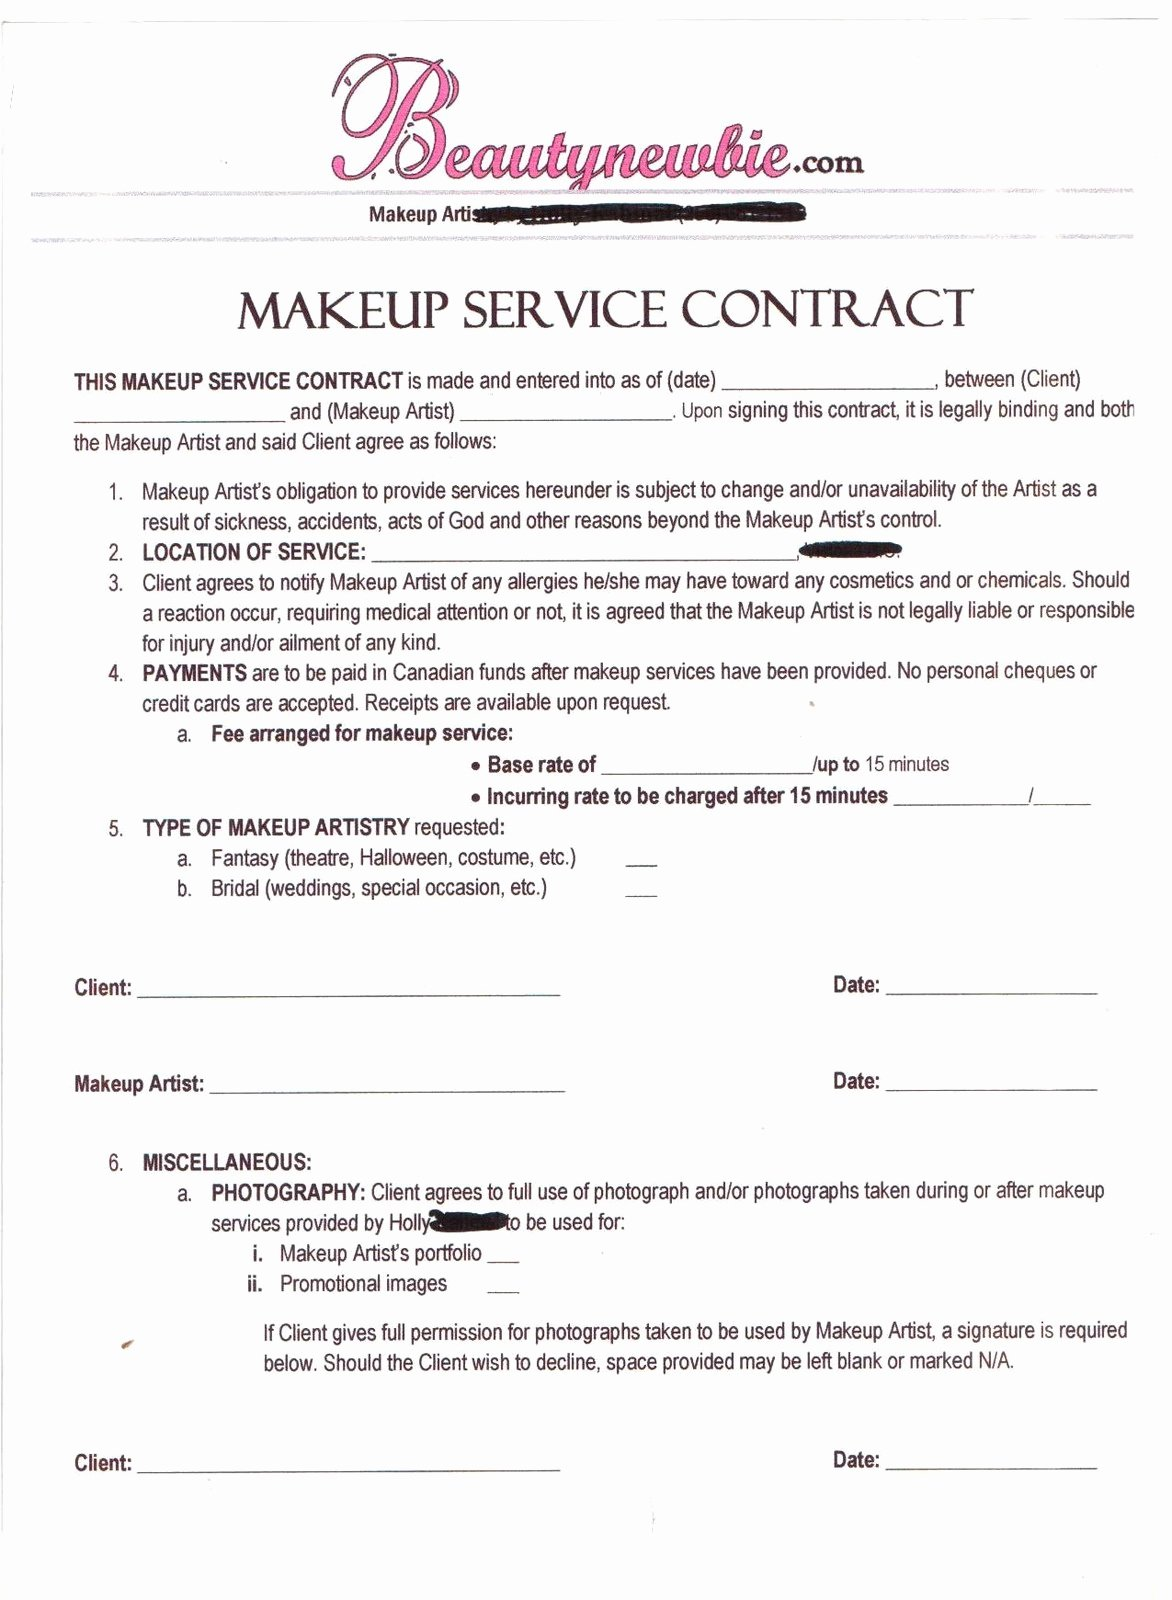 Freelance Makeup Artist Contract Templates Elegant Freelance Makeup Artist Contract Template